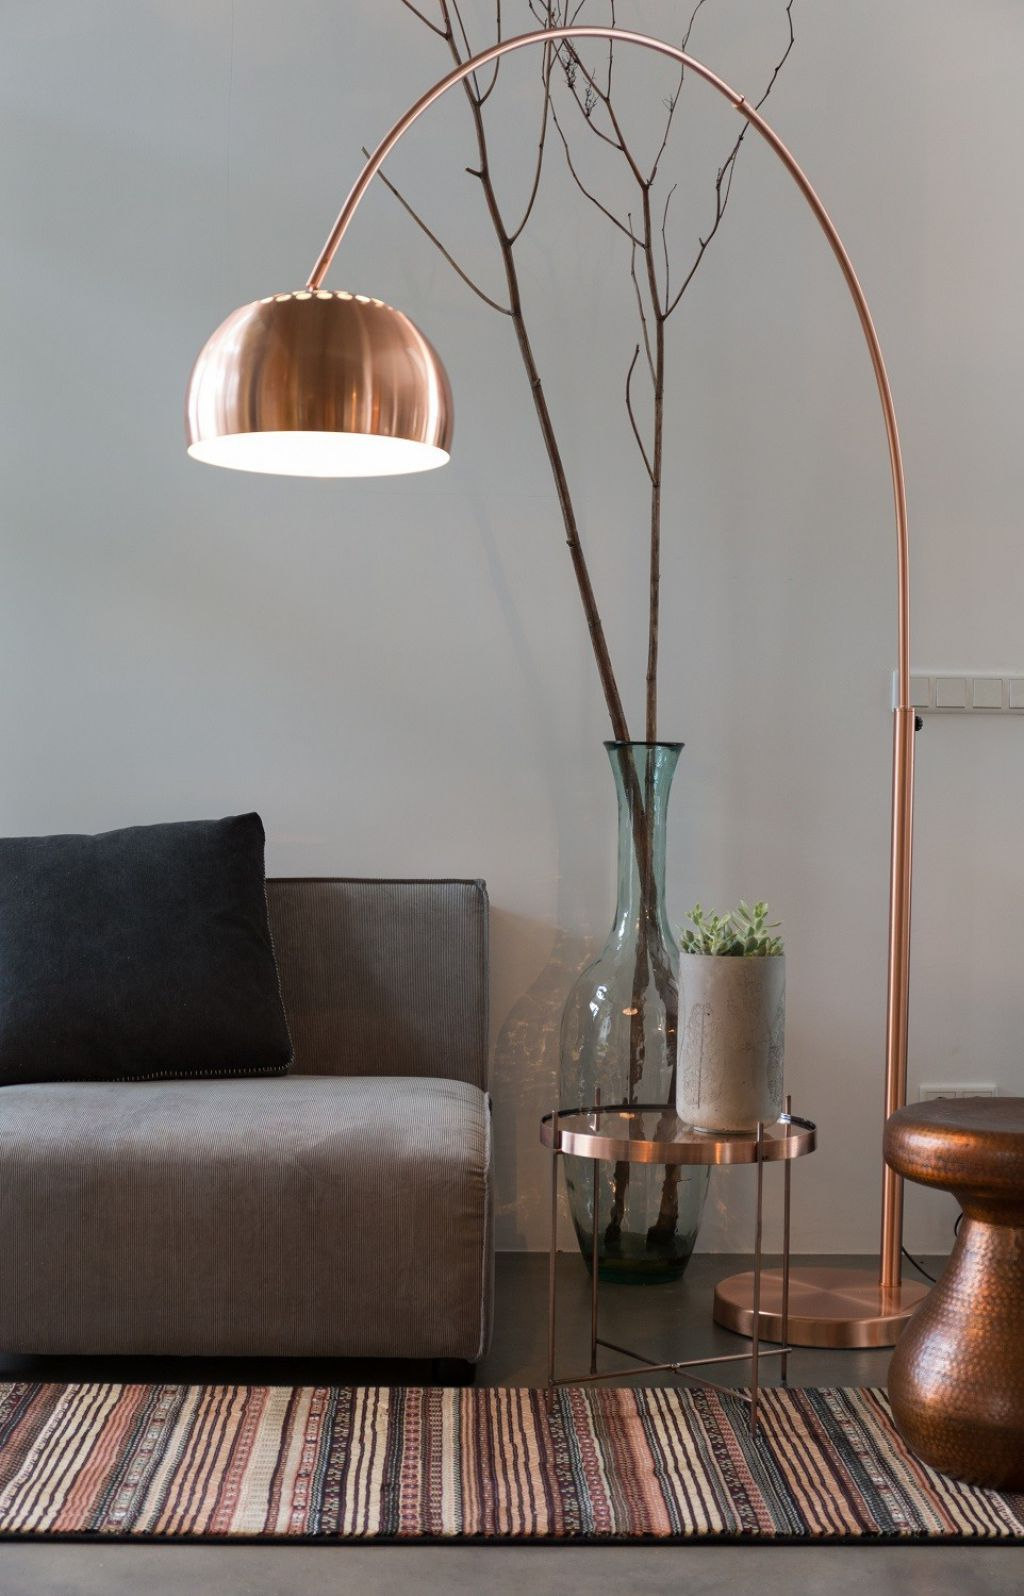 Small Arc Floor Lamp Living Room With Grey Walls And Sofa Also Copper Arc Floor Lamp